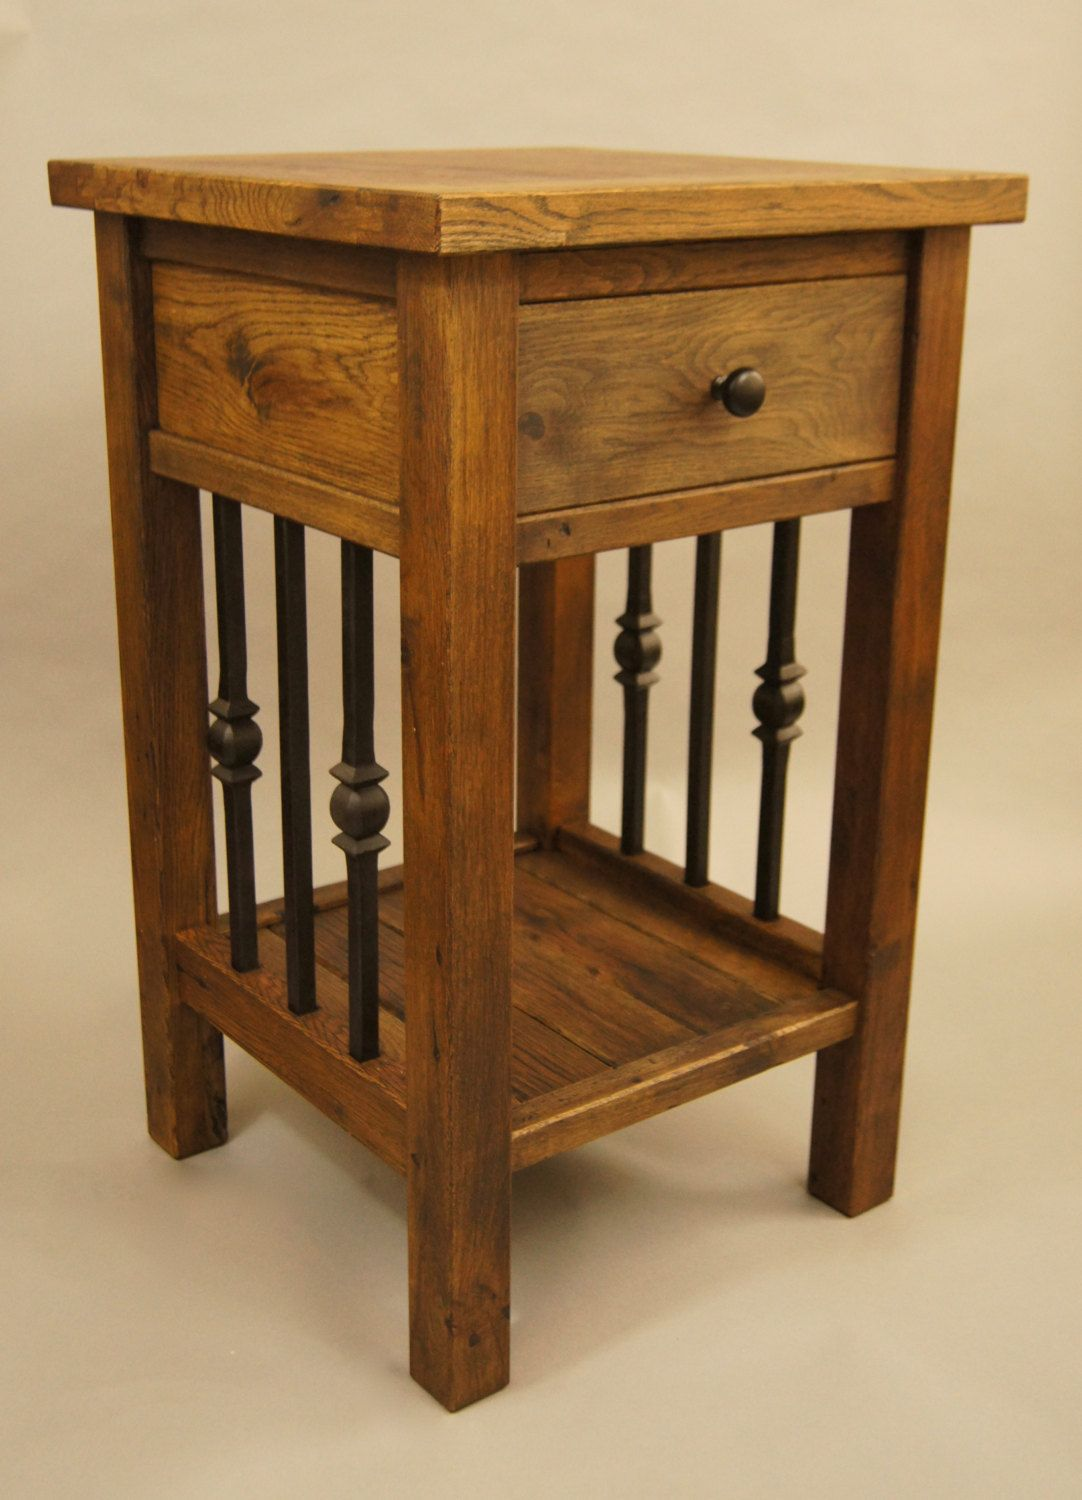 Solid Reclaimed Oak And Cast Iron Bedside Table With Drawer By